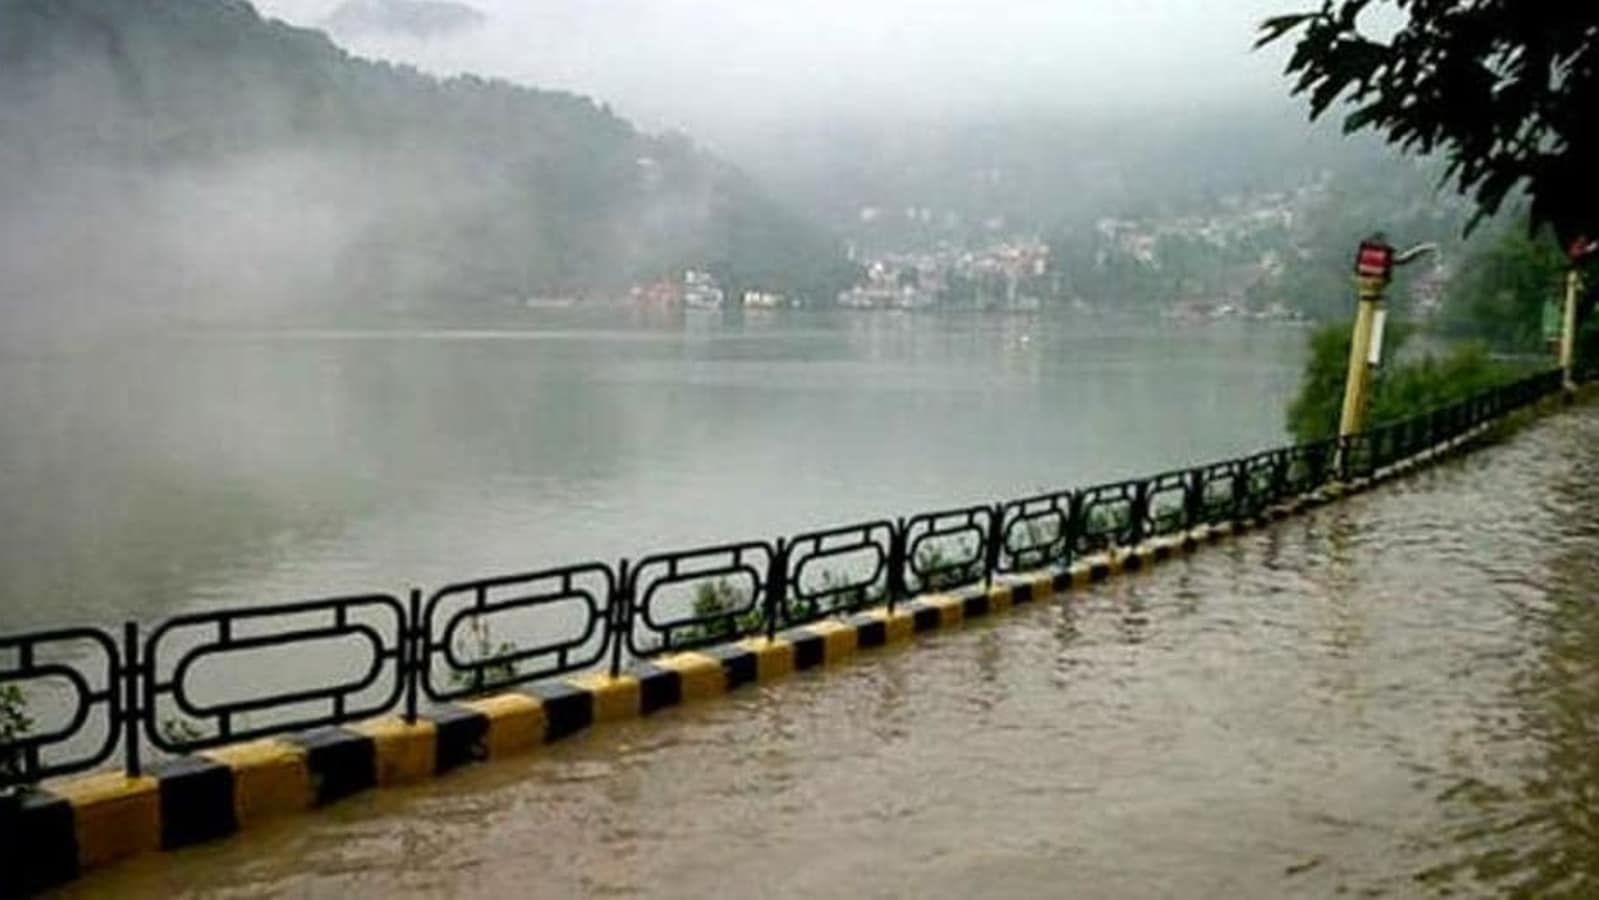 News updates from HT: Nainital Lake overflows amid heavy rains in Uttarakhand and all the latest news